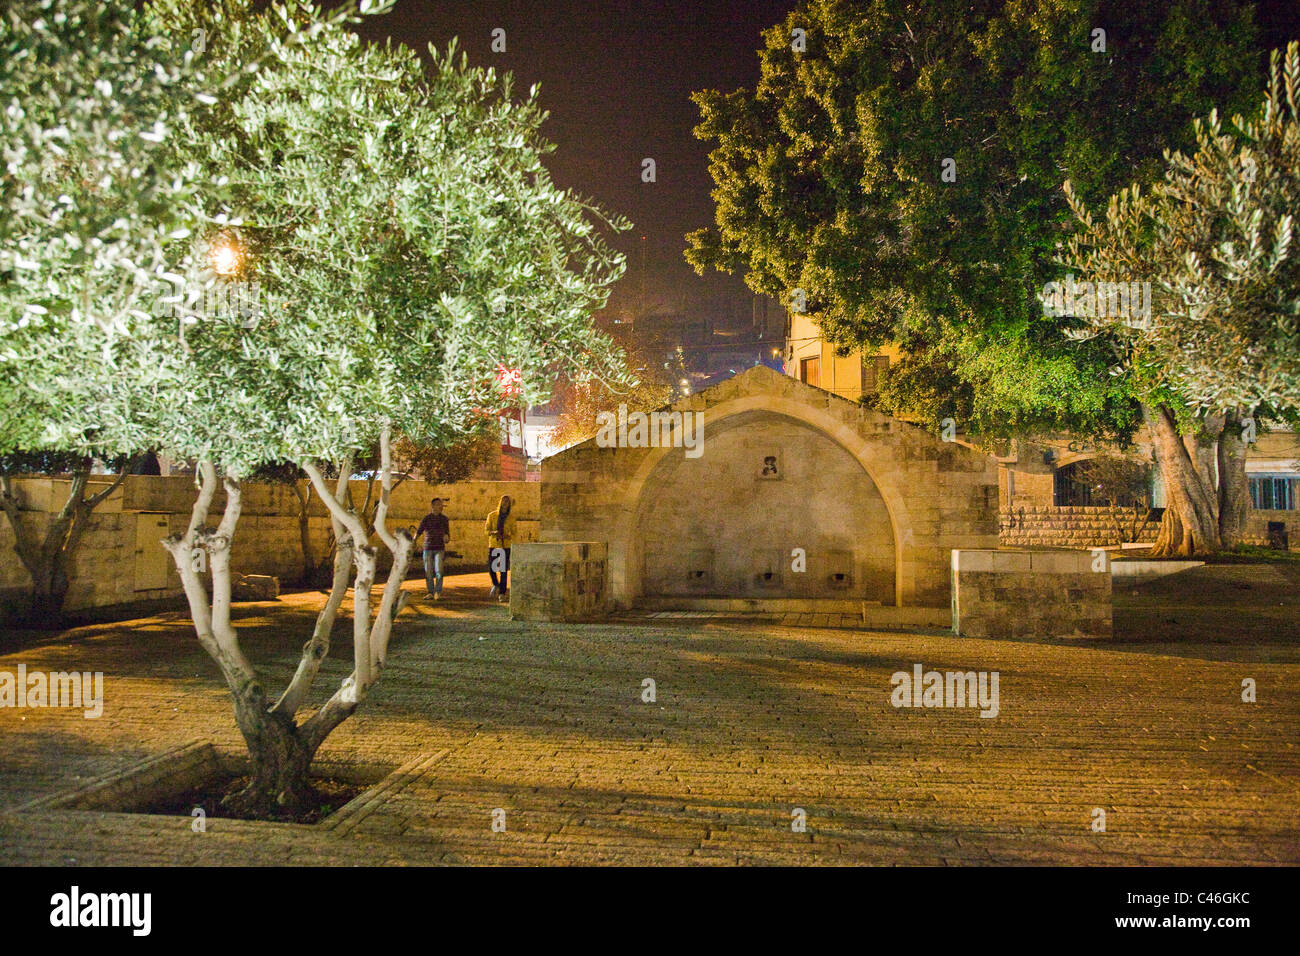 Photograph of Mary's well at Christmas eve in the city of Nazareth - Stock Image